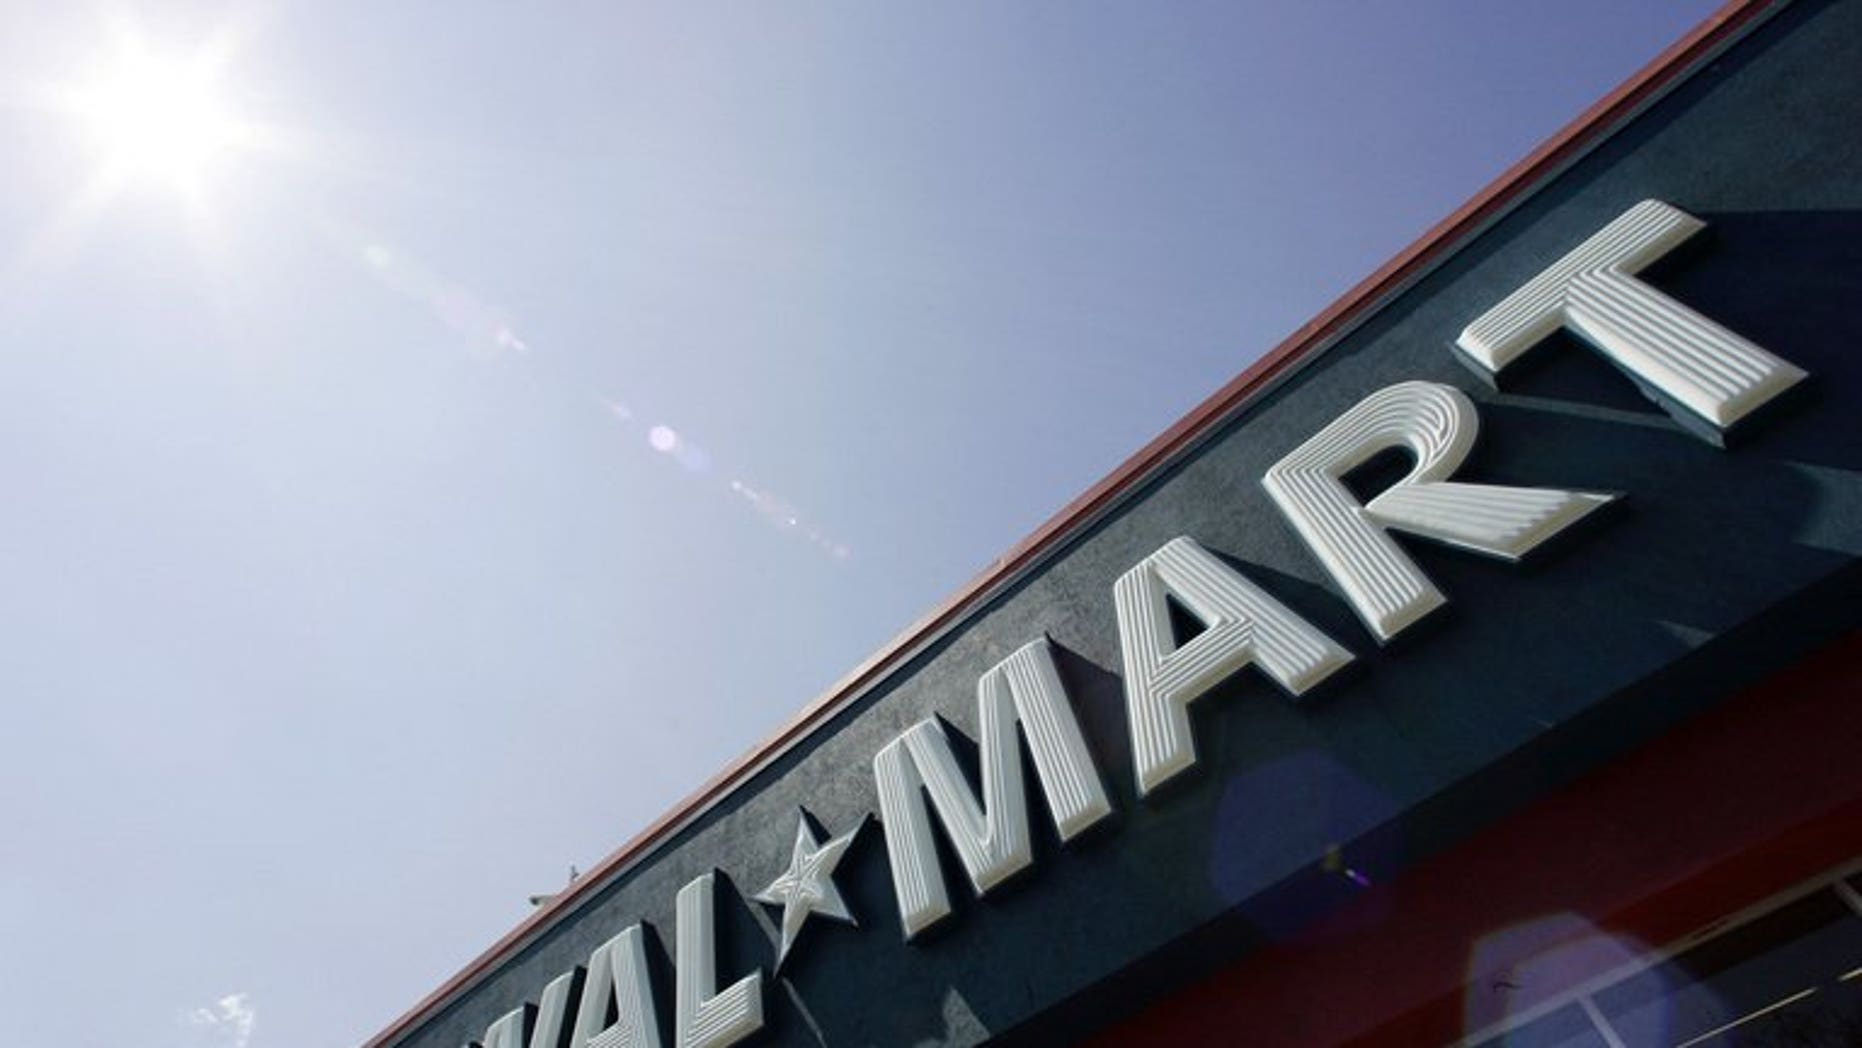 Walmart has told India that it is unable to meet local sourcing requirements for foreign supermarket groups wanting to open stores in the country, a report said Wednesday.